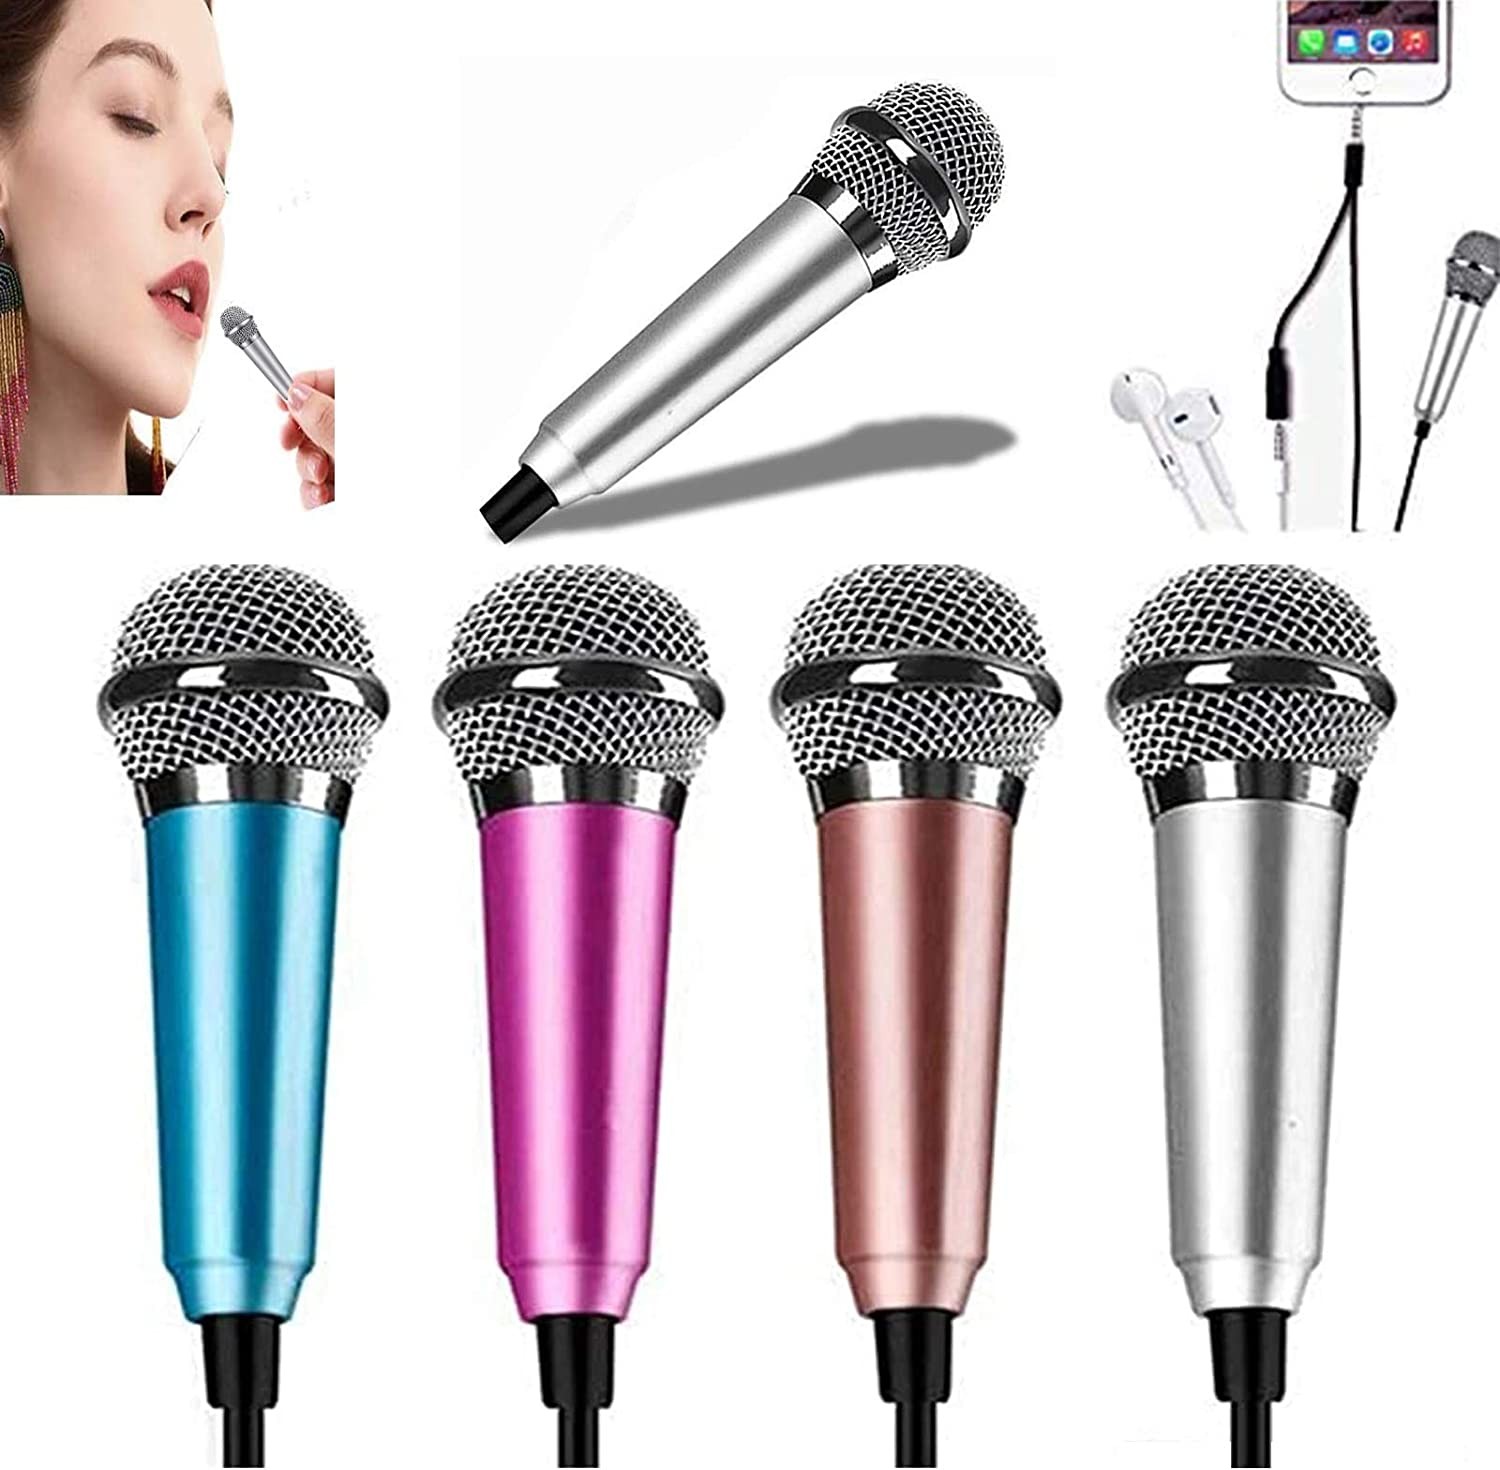 Recording Voice Recording Mini Karaoke Microphone Black and Gold Wootrip Mini Voice Recording Microphone Portable Karaoke Mic for Singing